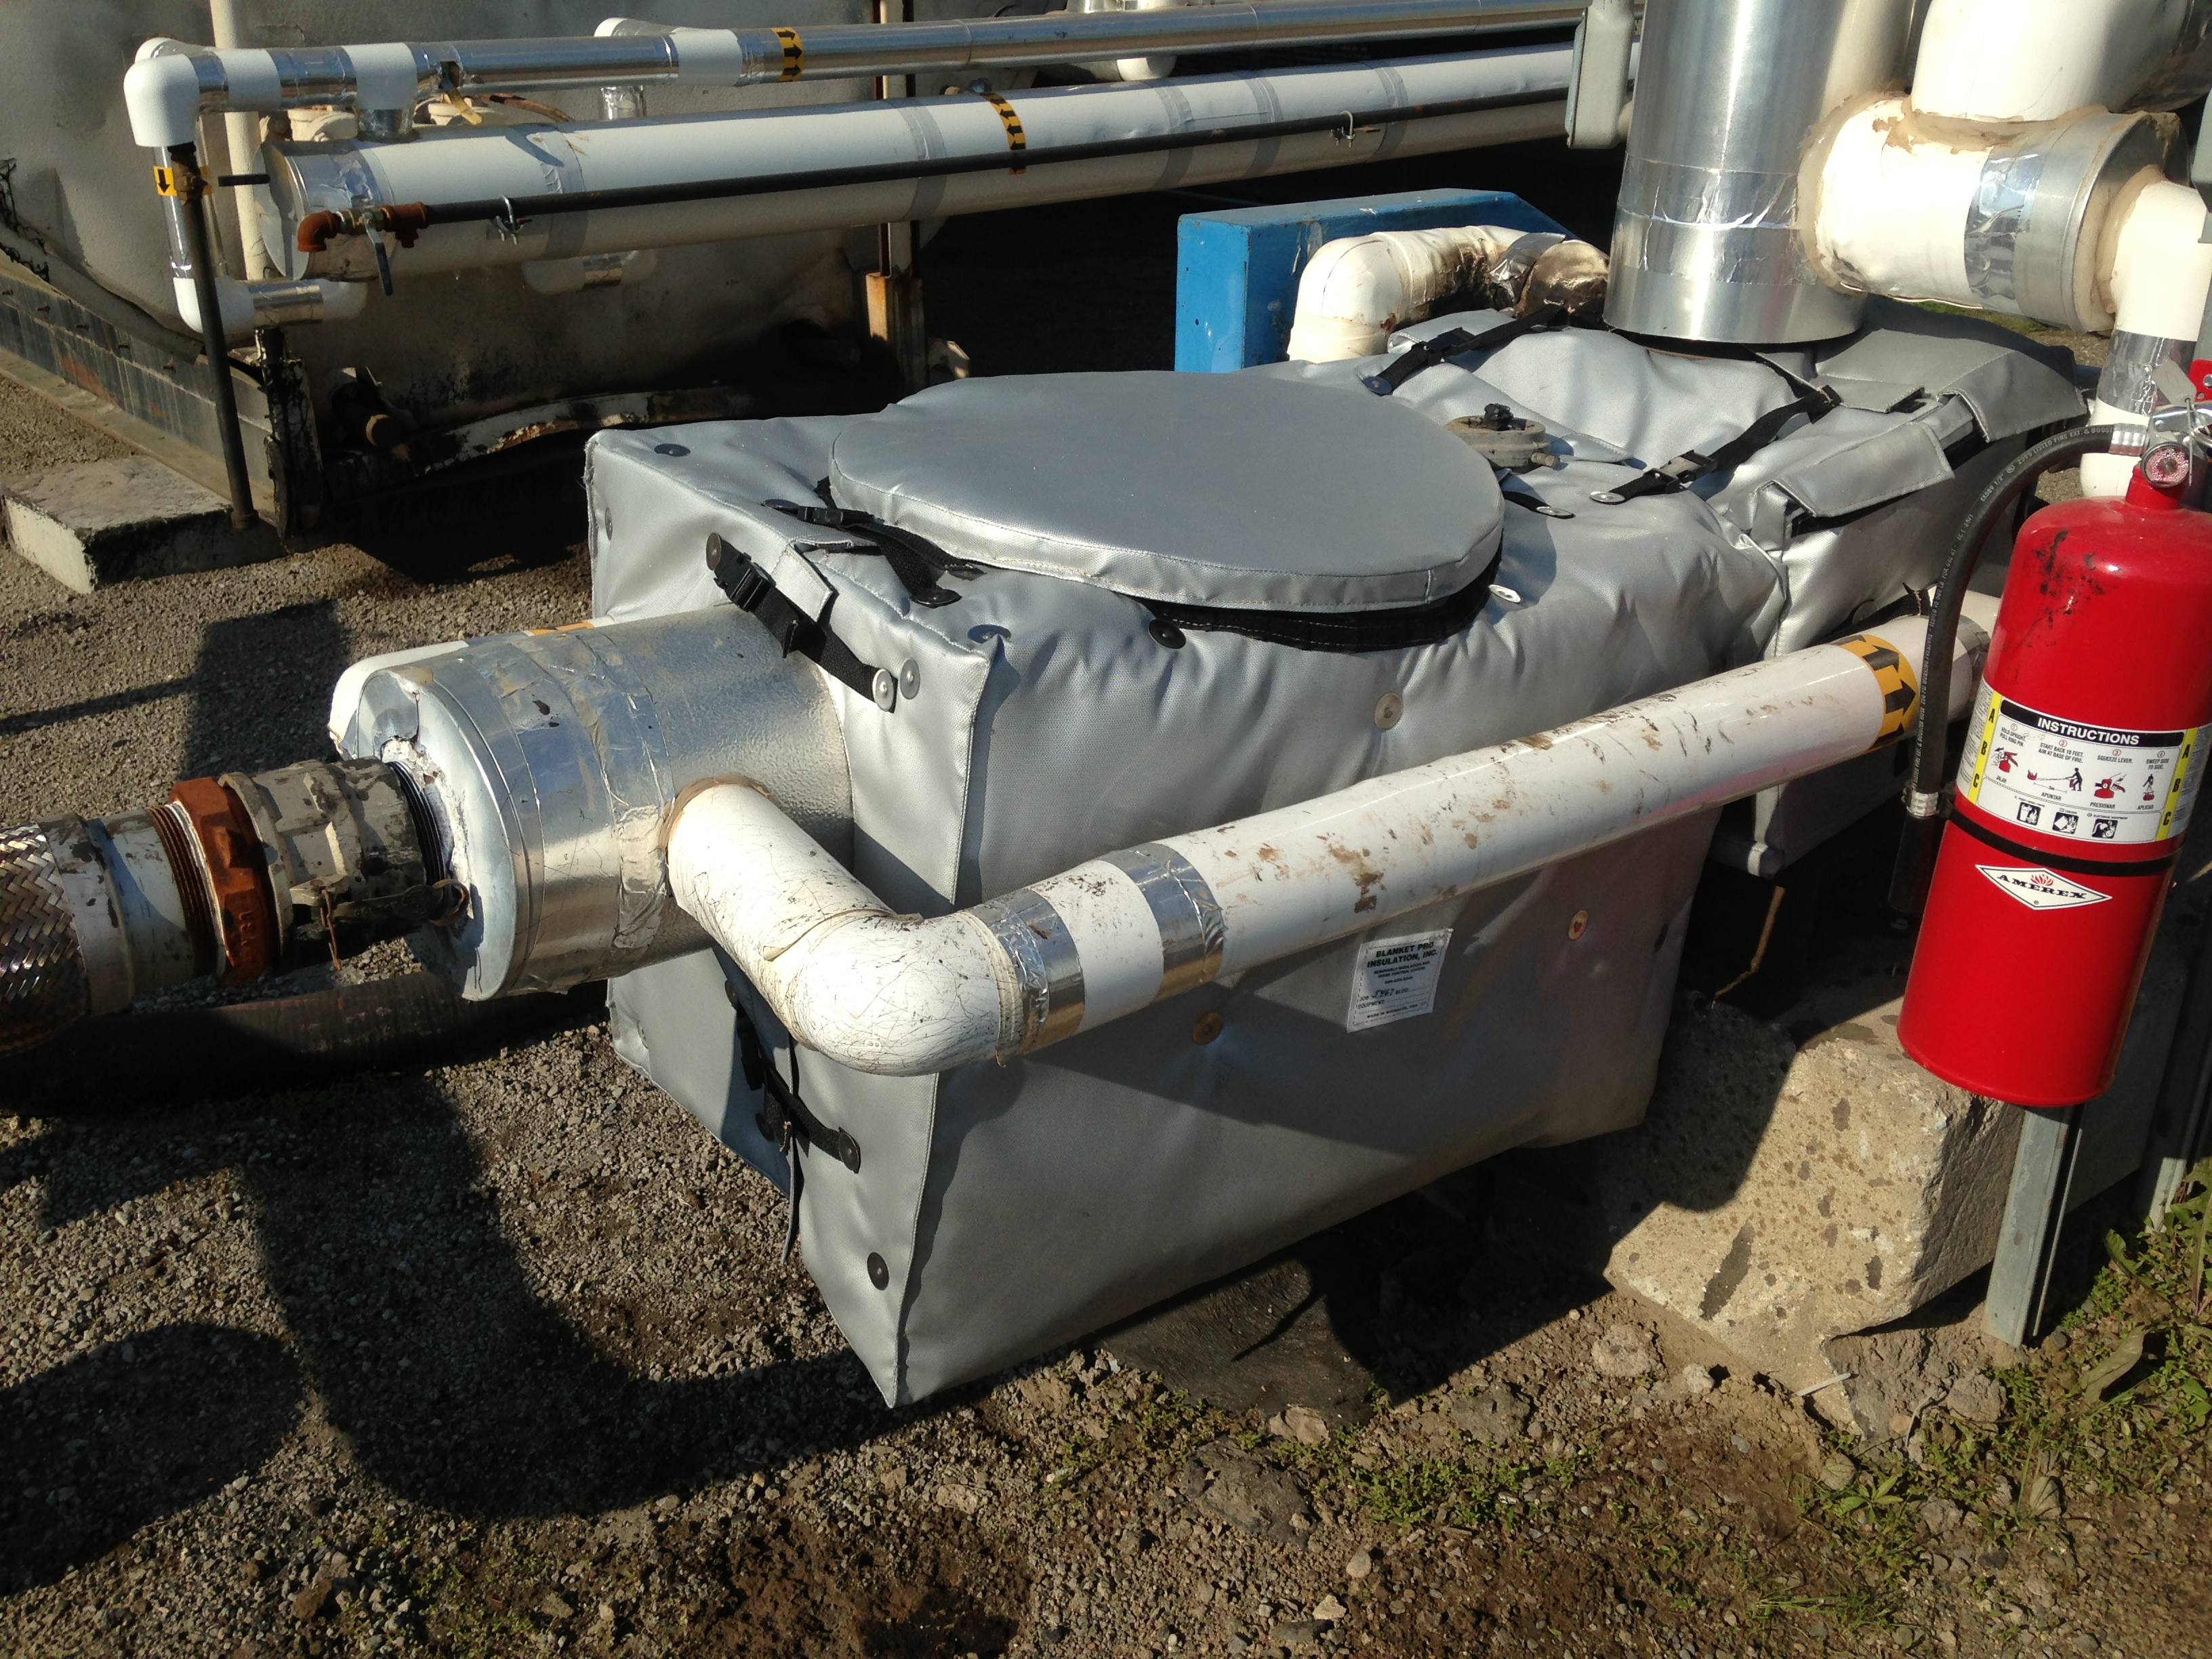 Removable Insulation Blankets Around Pump And Filter At Asphalt Plant